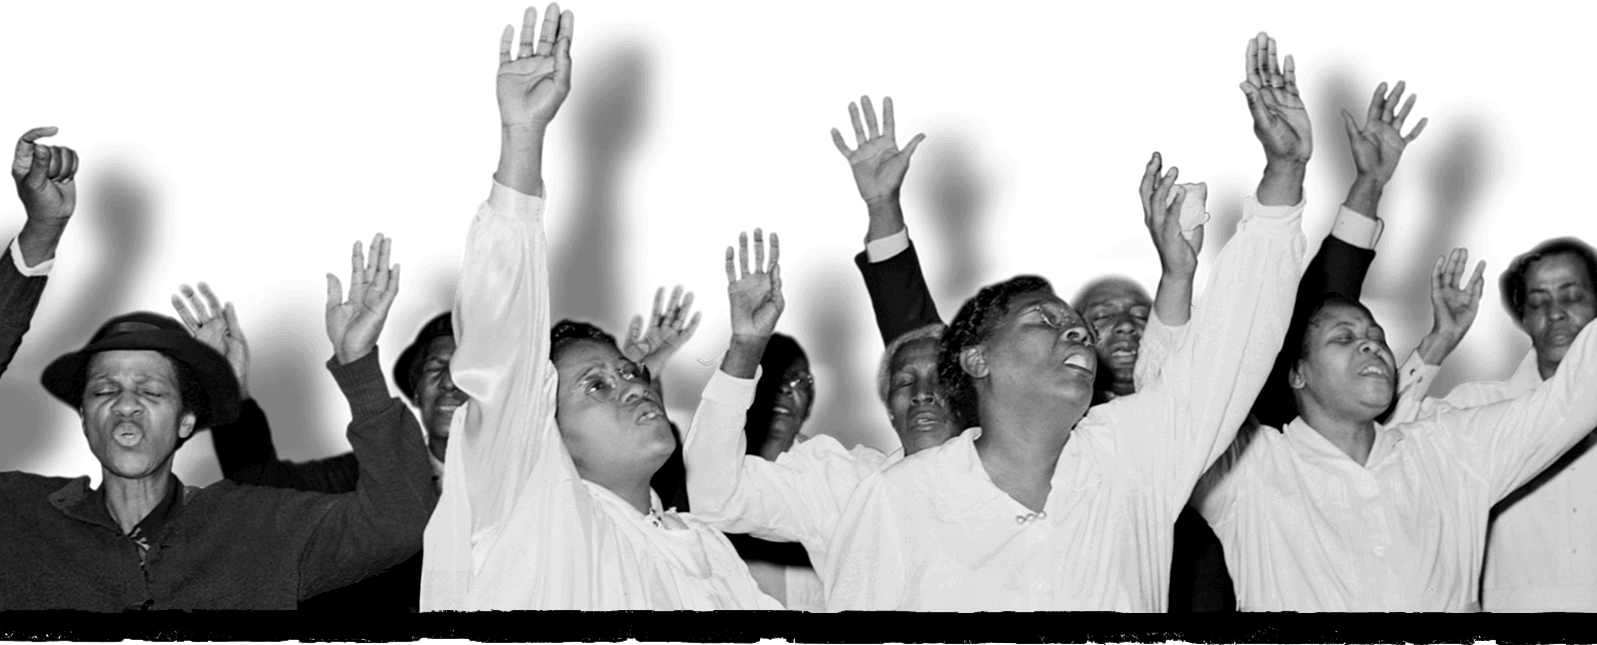 People worshiping at a church service